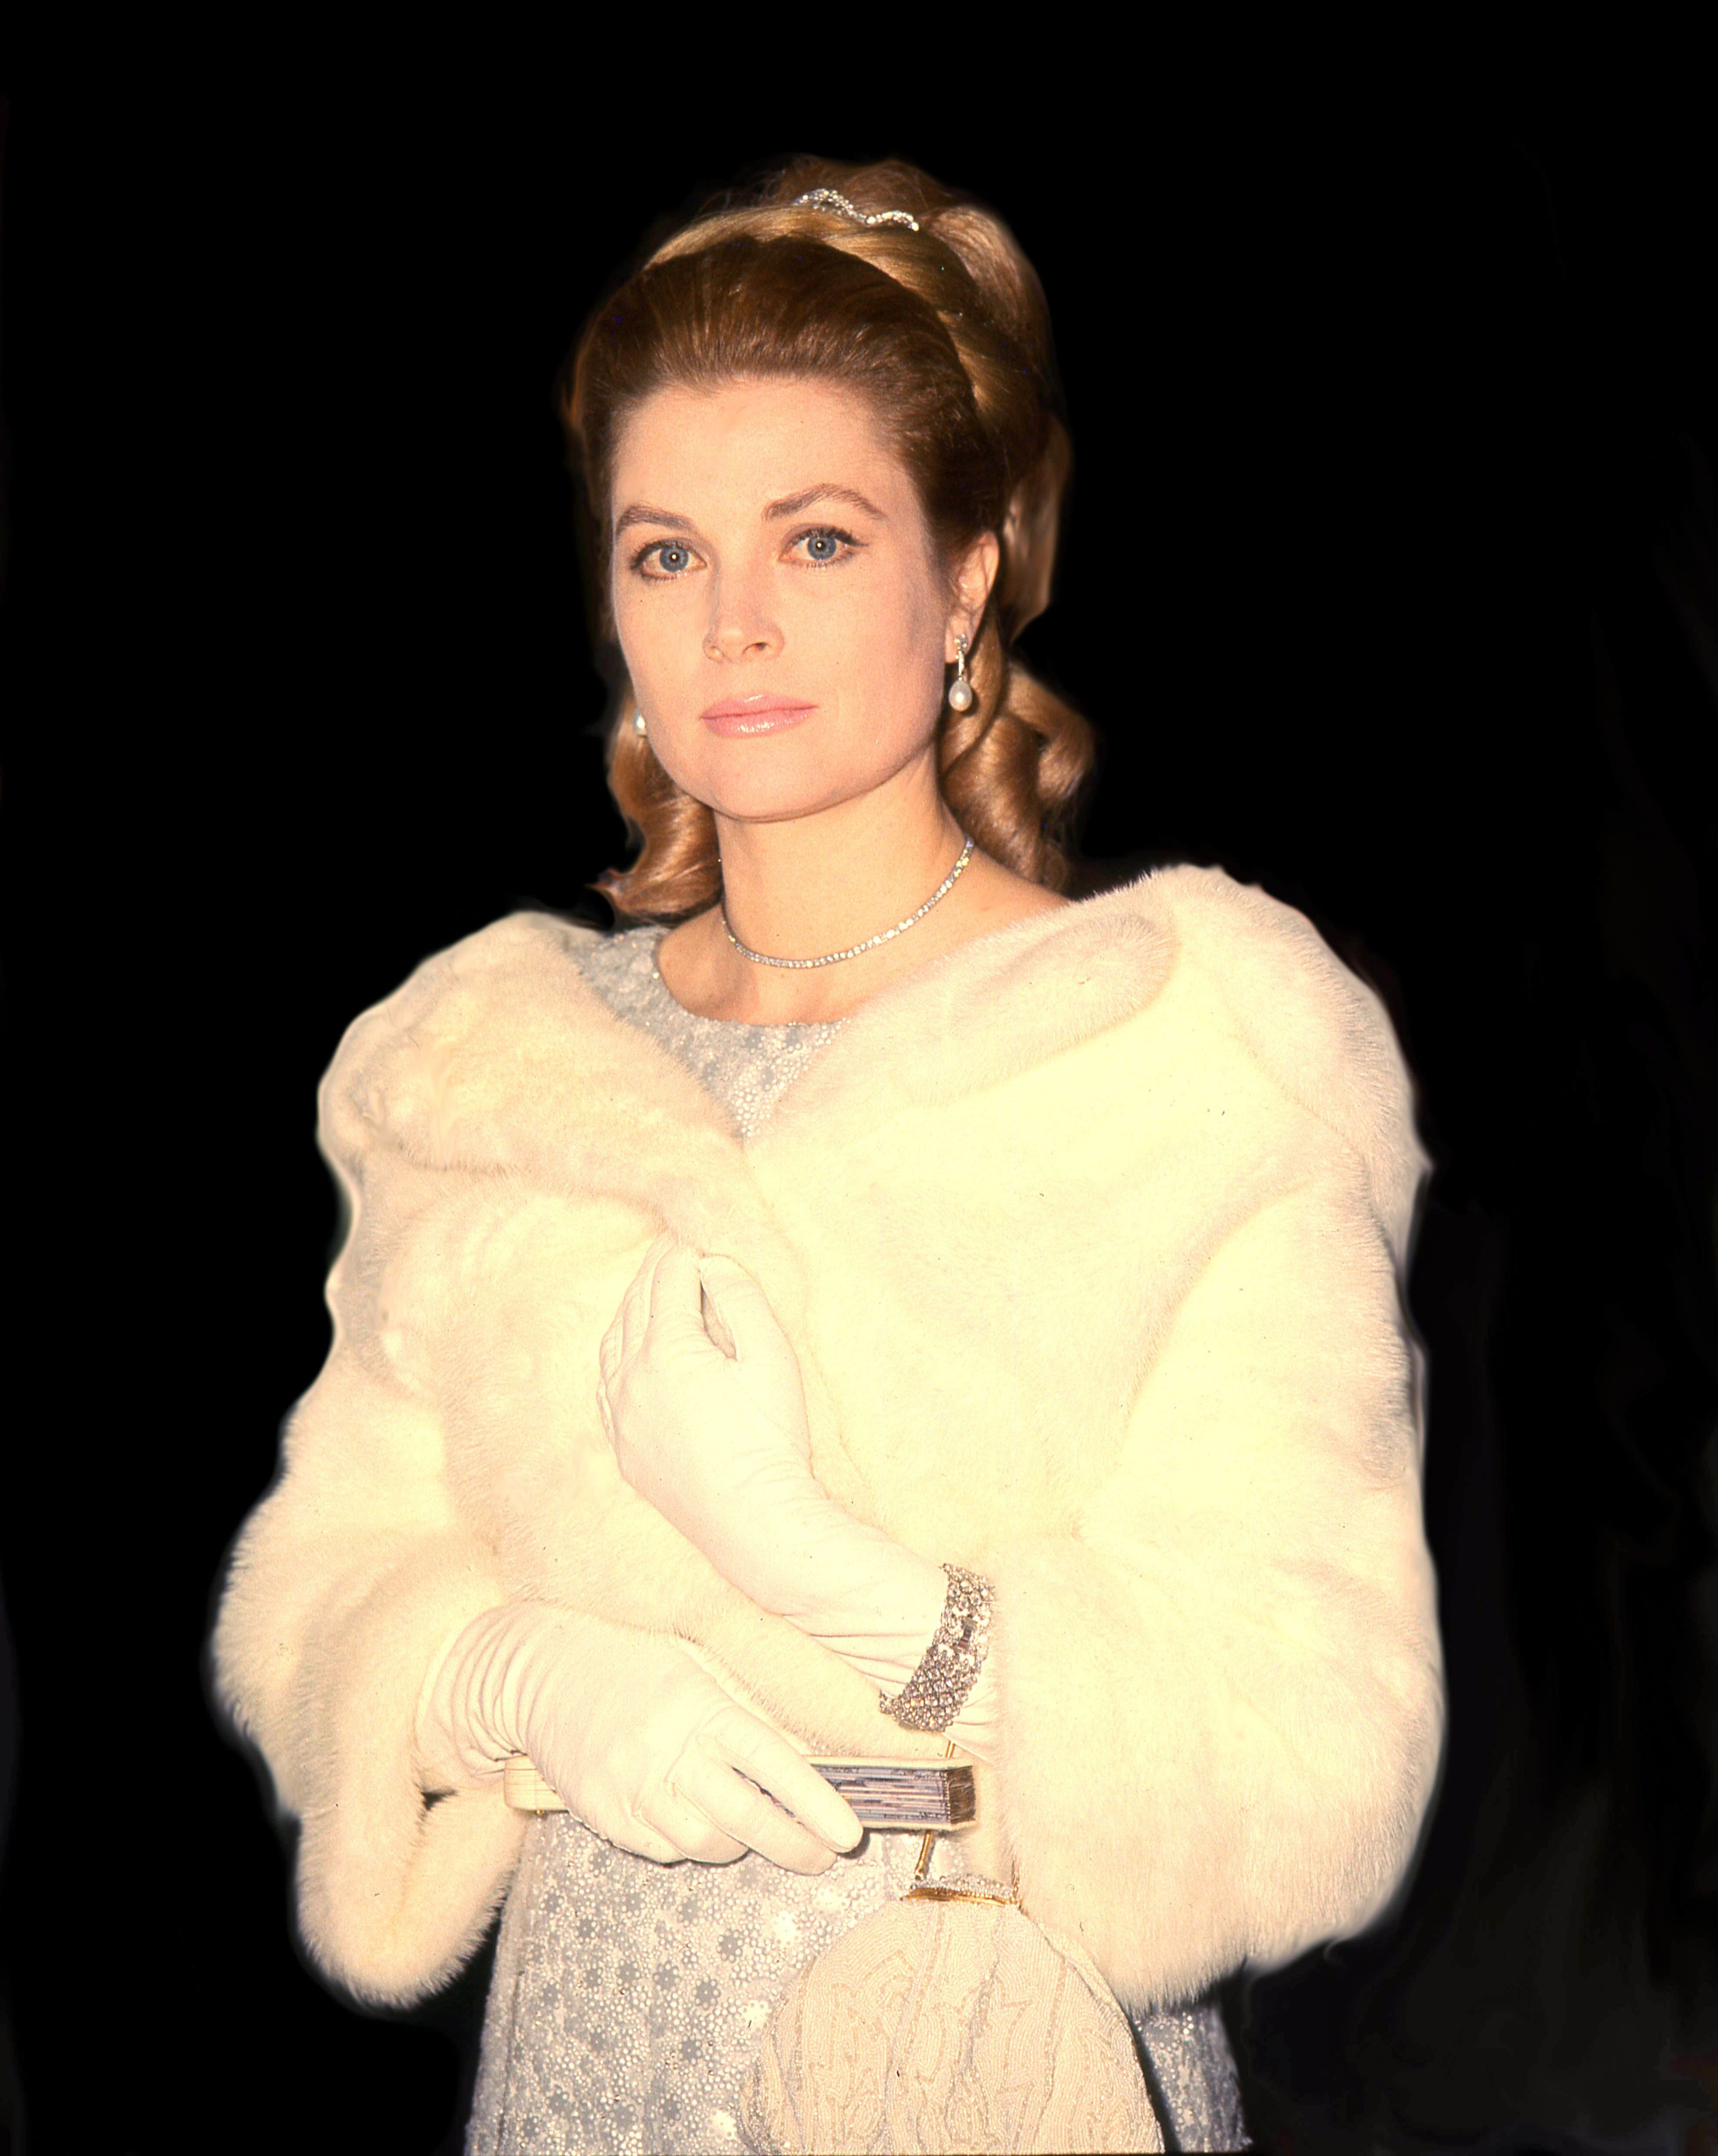 A Royal Photographer Says Grace Kelly Was The Most Difficult to Work With